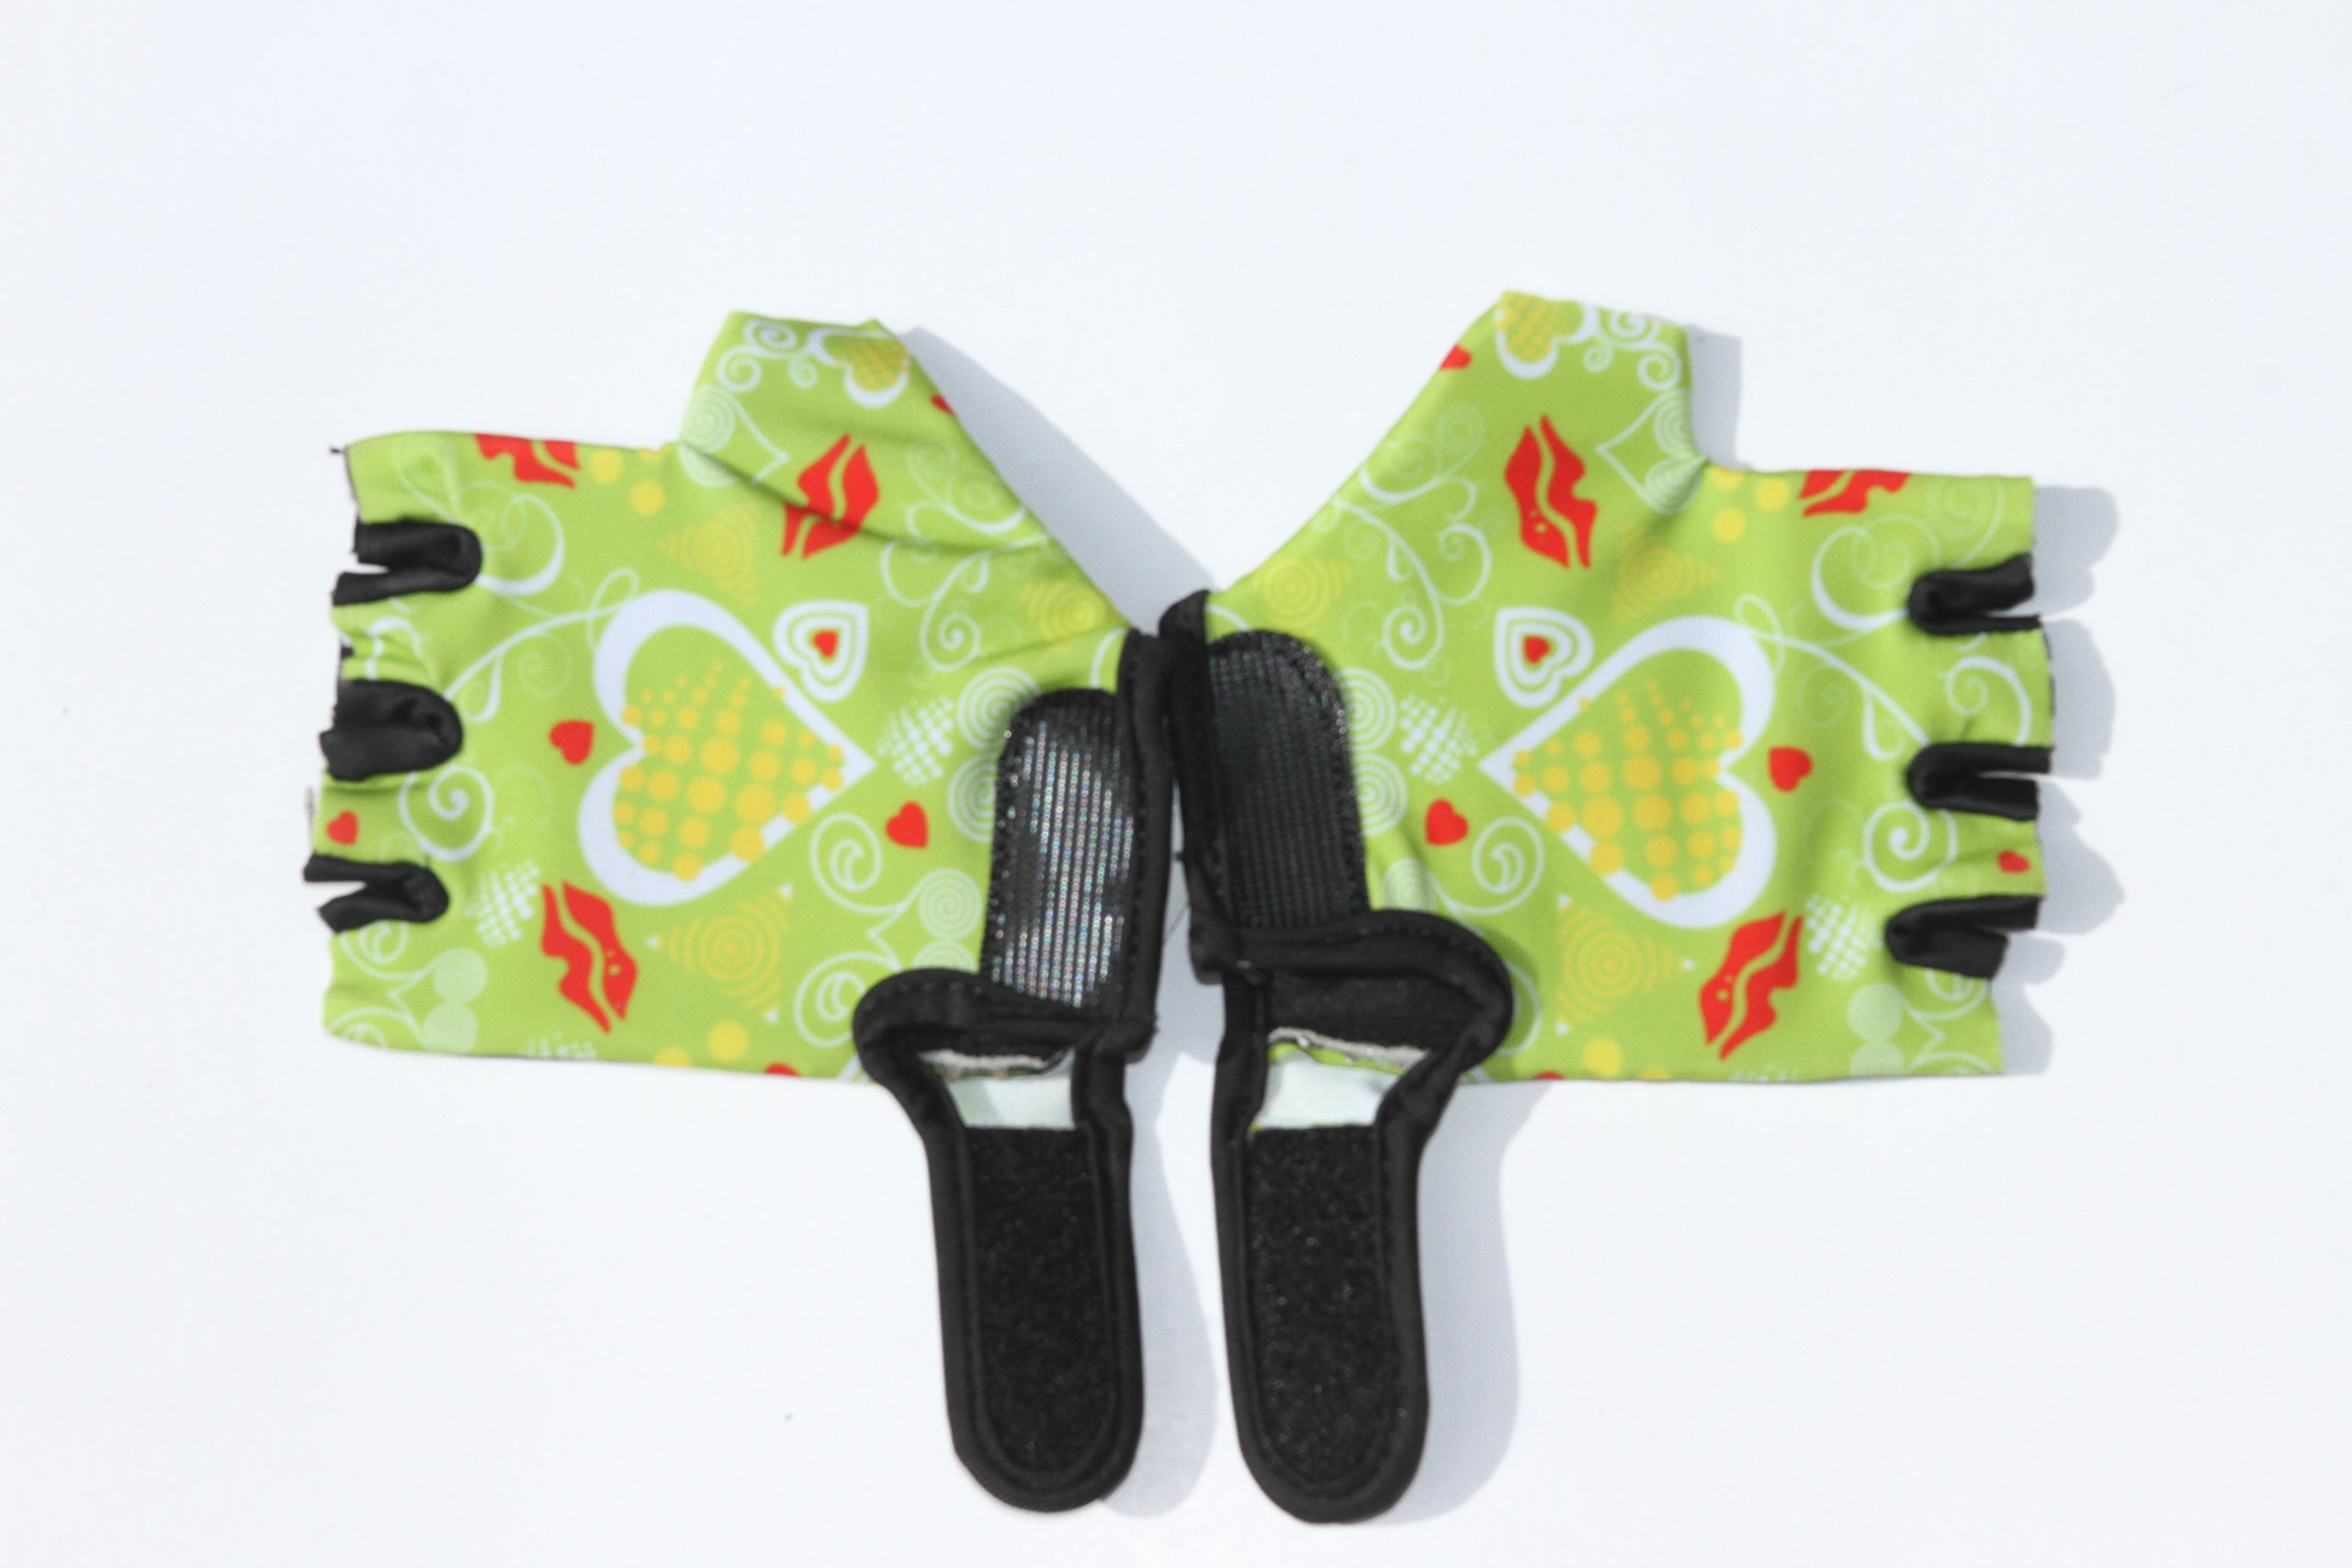 HANG Monkey Bars gloves With Grip Control (green) For Children 7 and 8 years old